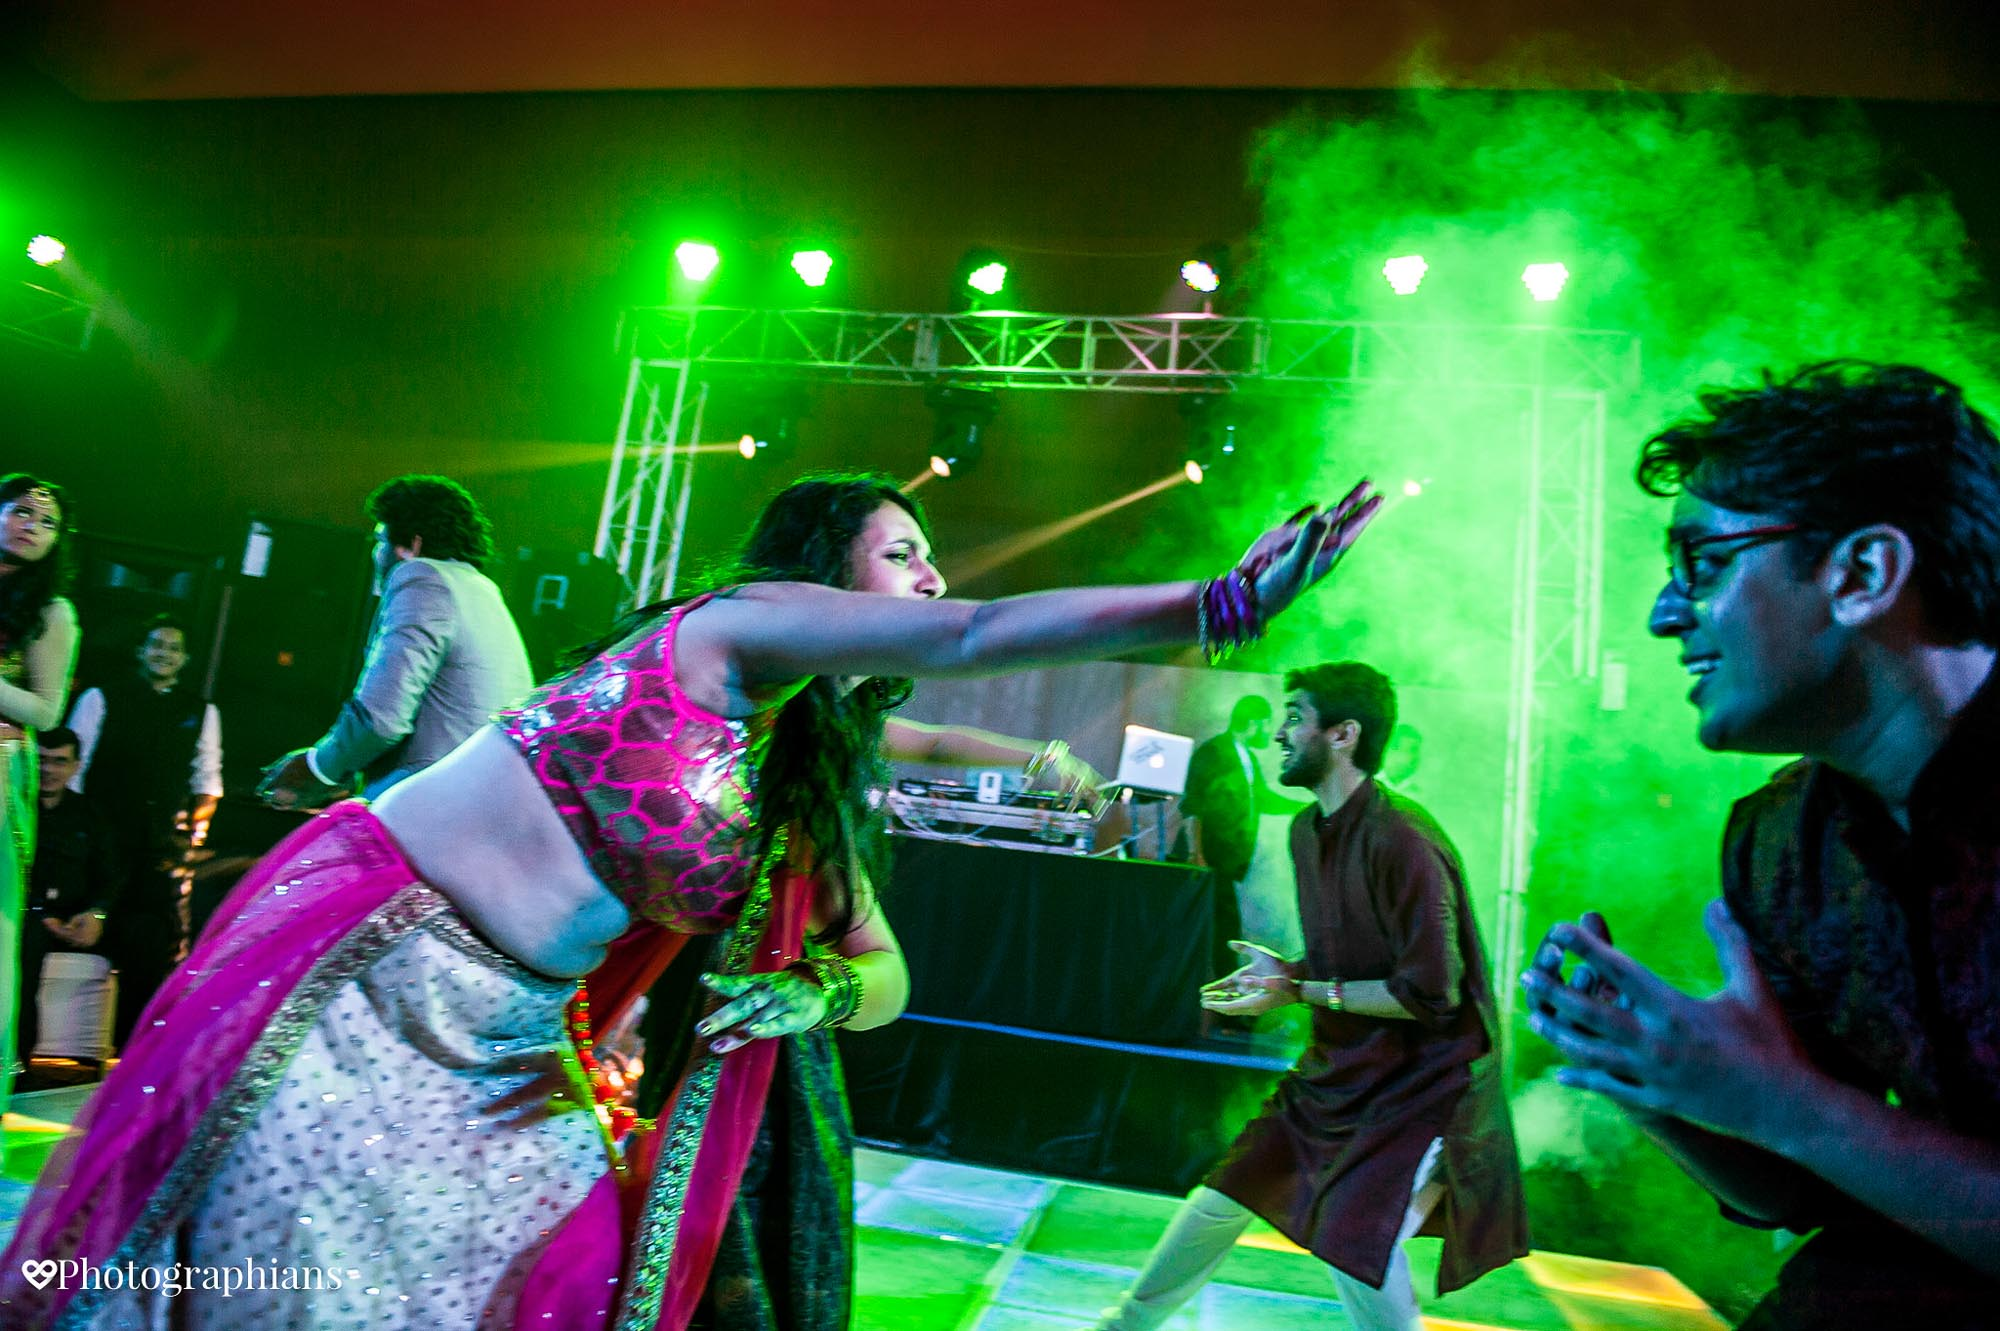 Punjabi_Marwari_Wedding_Kolkata_Photographians_-VIDHI-44